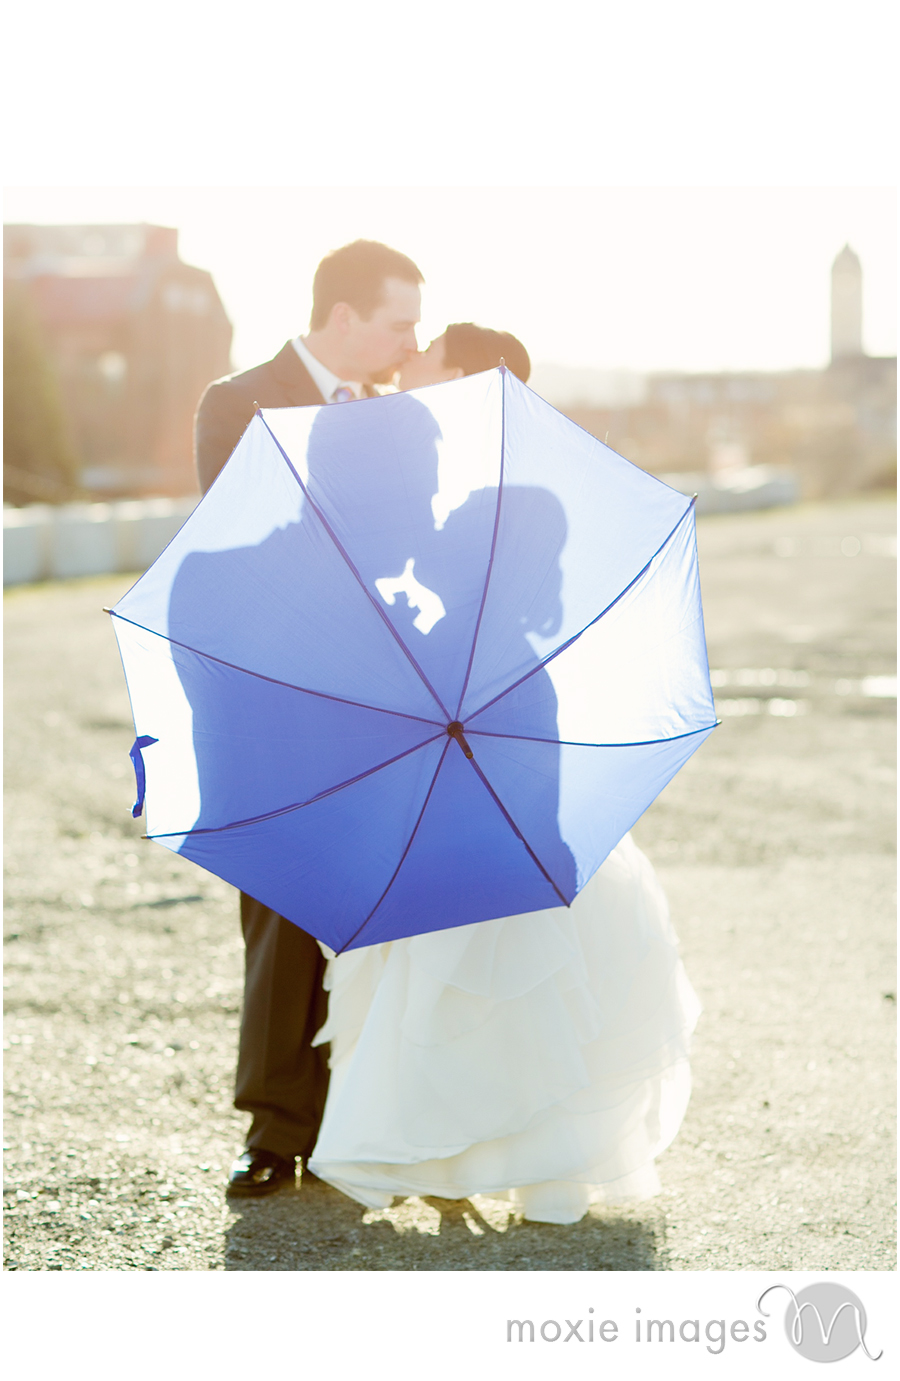 spokane wedding umbrella